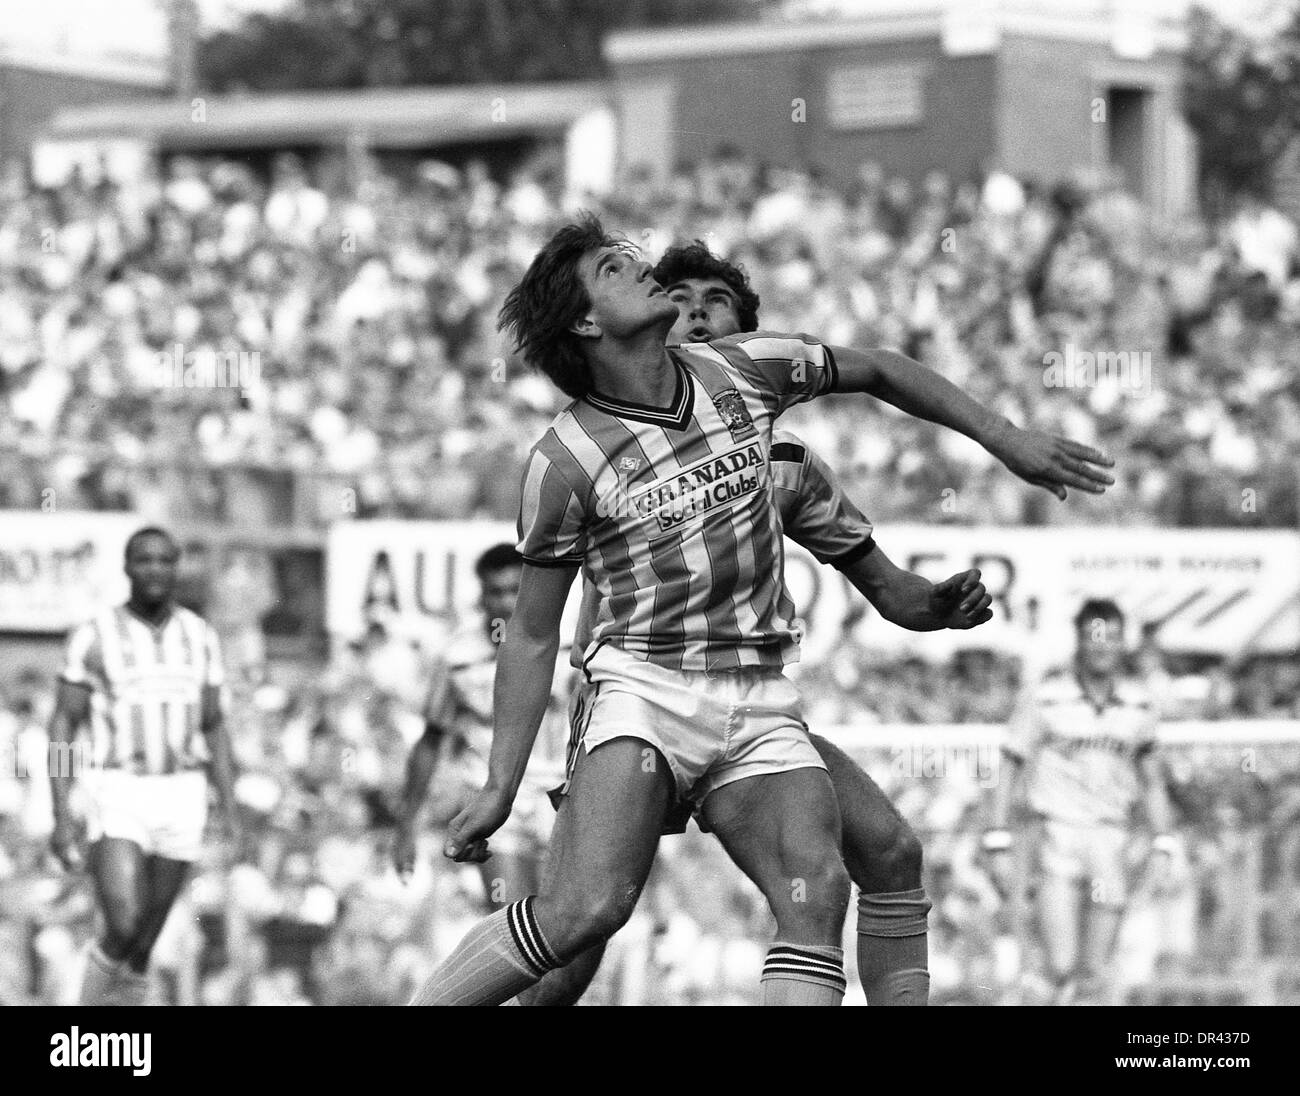 Coventry City V Aston Villa en Highfield Road 4/10/86 Coventry City el futbolista David Phillips 1986 1980 Imagen De Stock